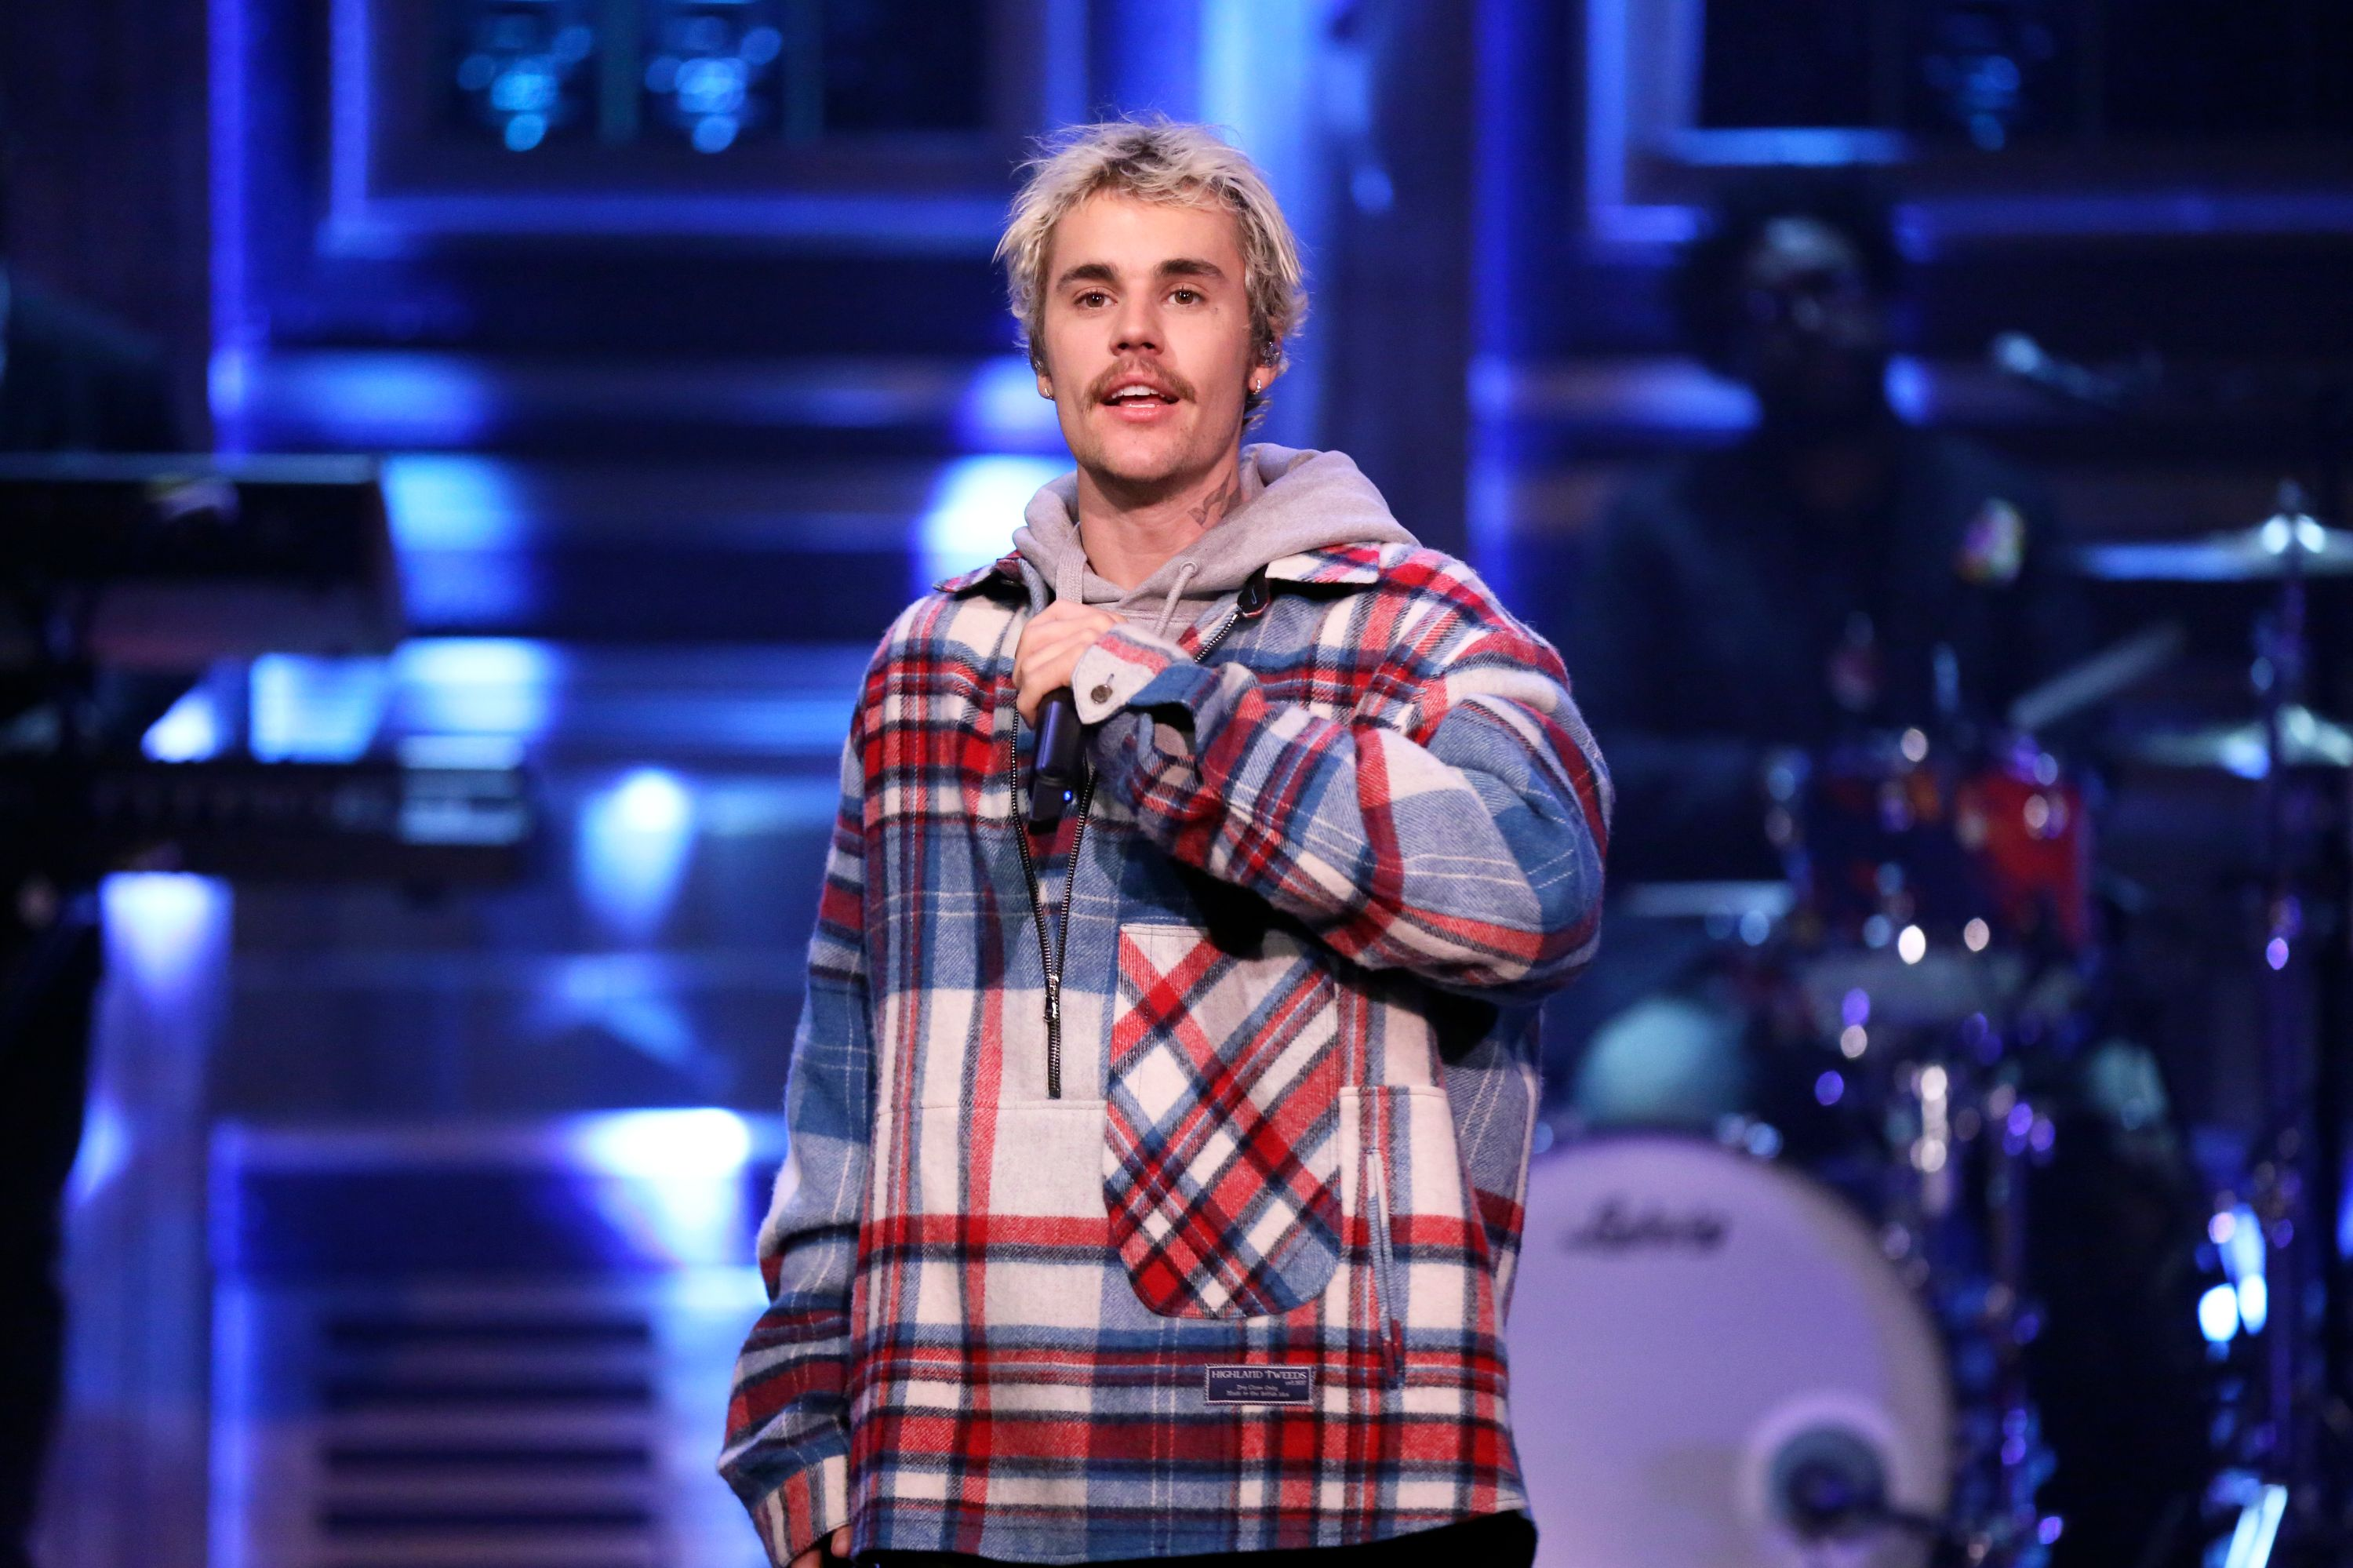 Justin Bieber at The Tonight Show Starring Jimmy Fallon - Season 7 on February 14, 2020 | Photo: Getty Images